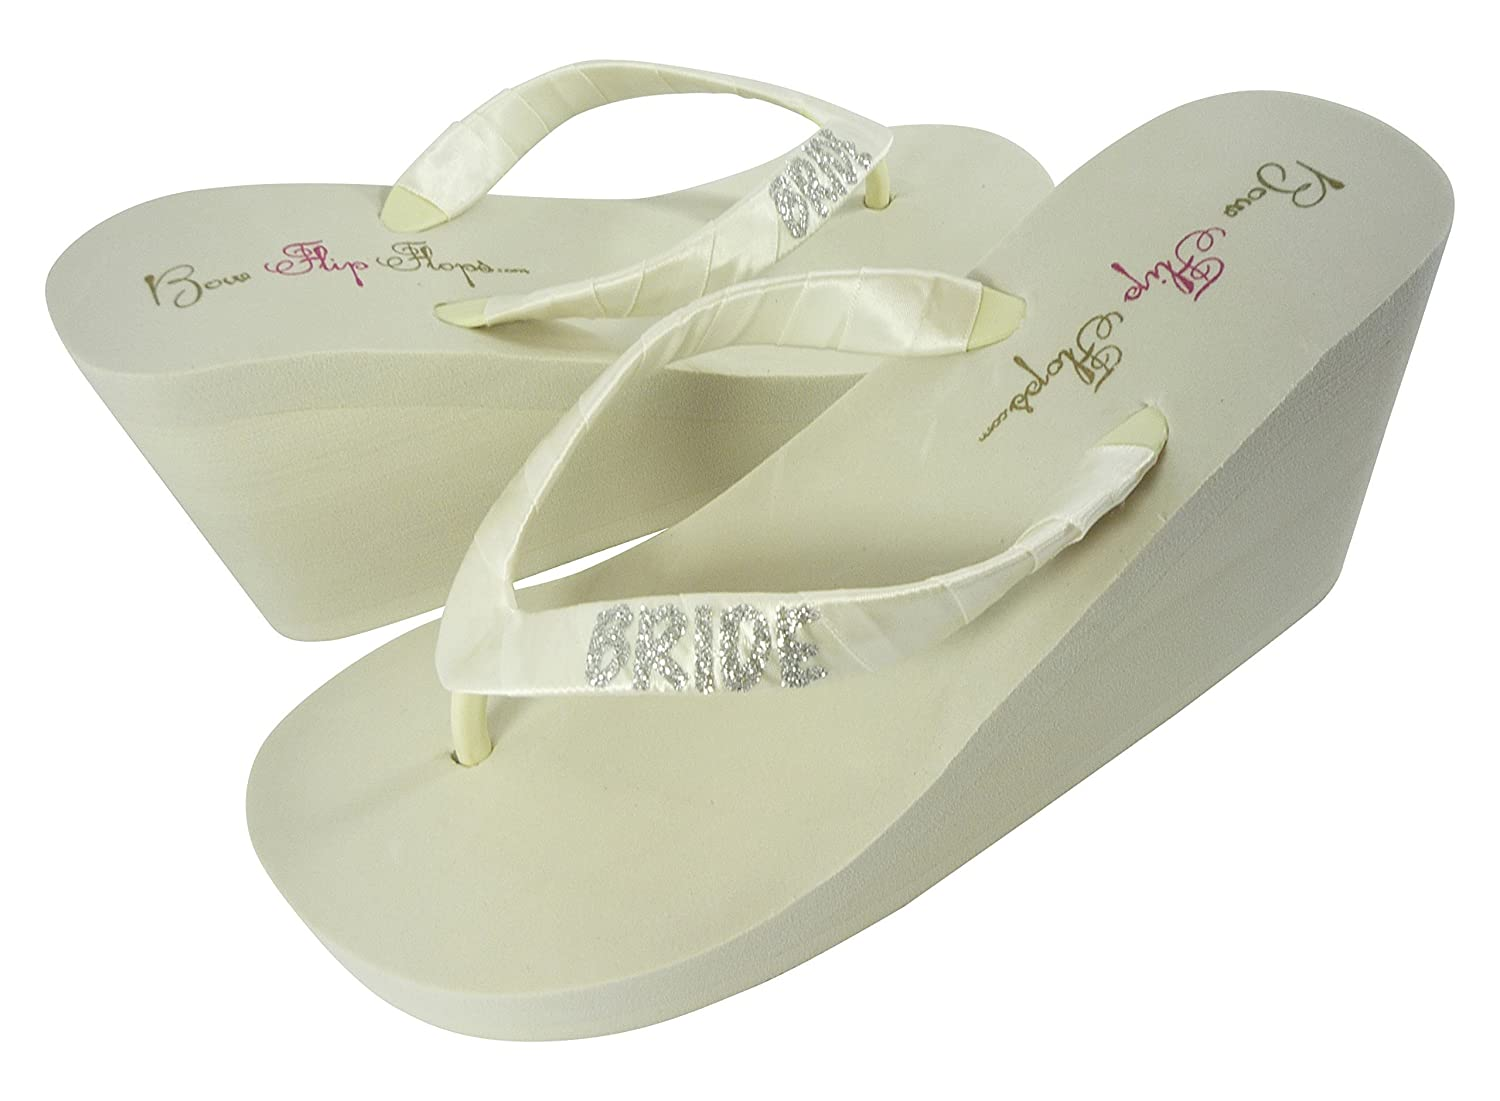 Customizable Glitter Bride Wedge Flip Flops Wedding Sandals Ivory White in Low or High Heel